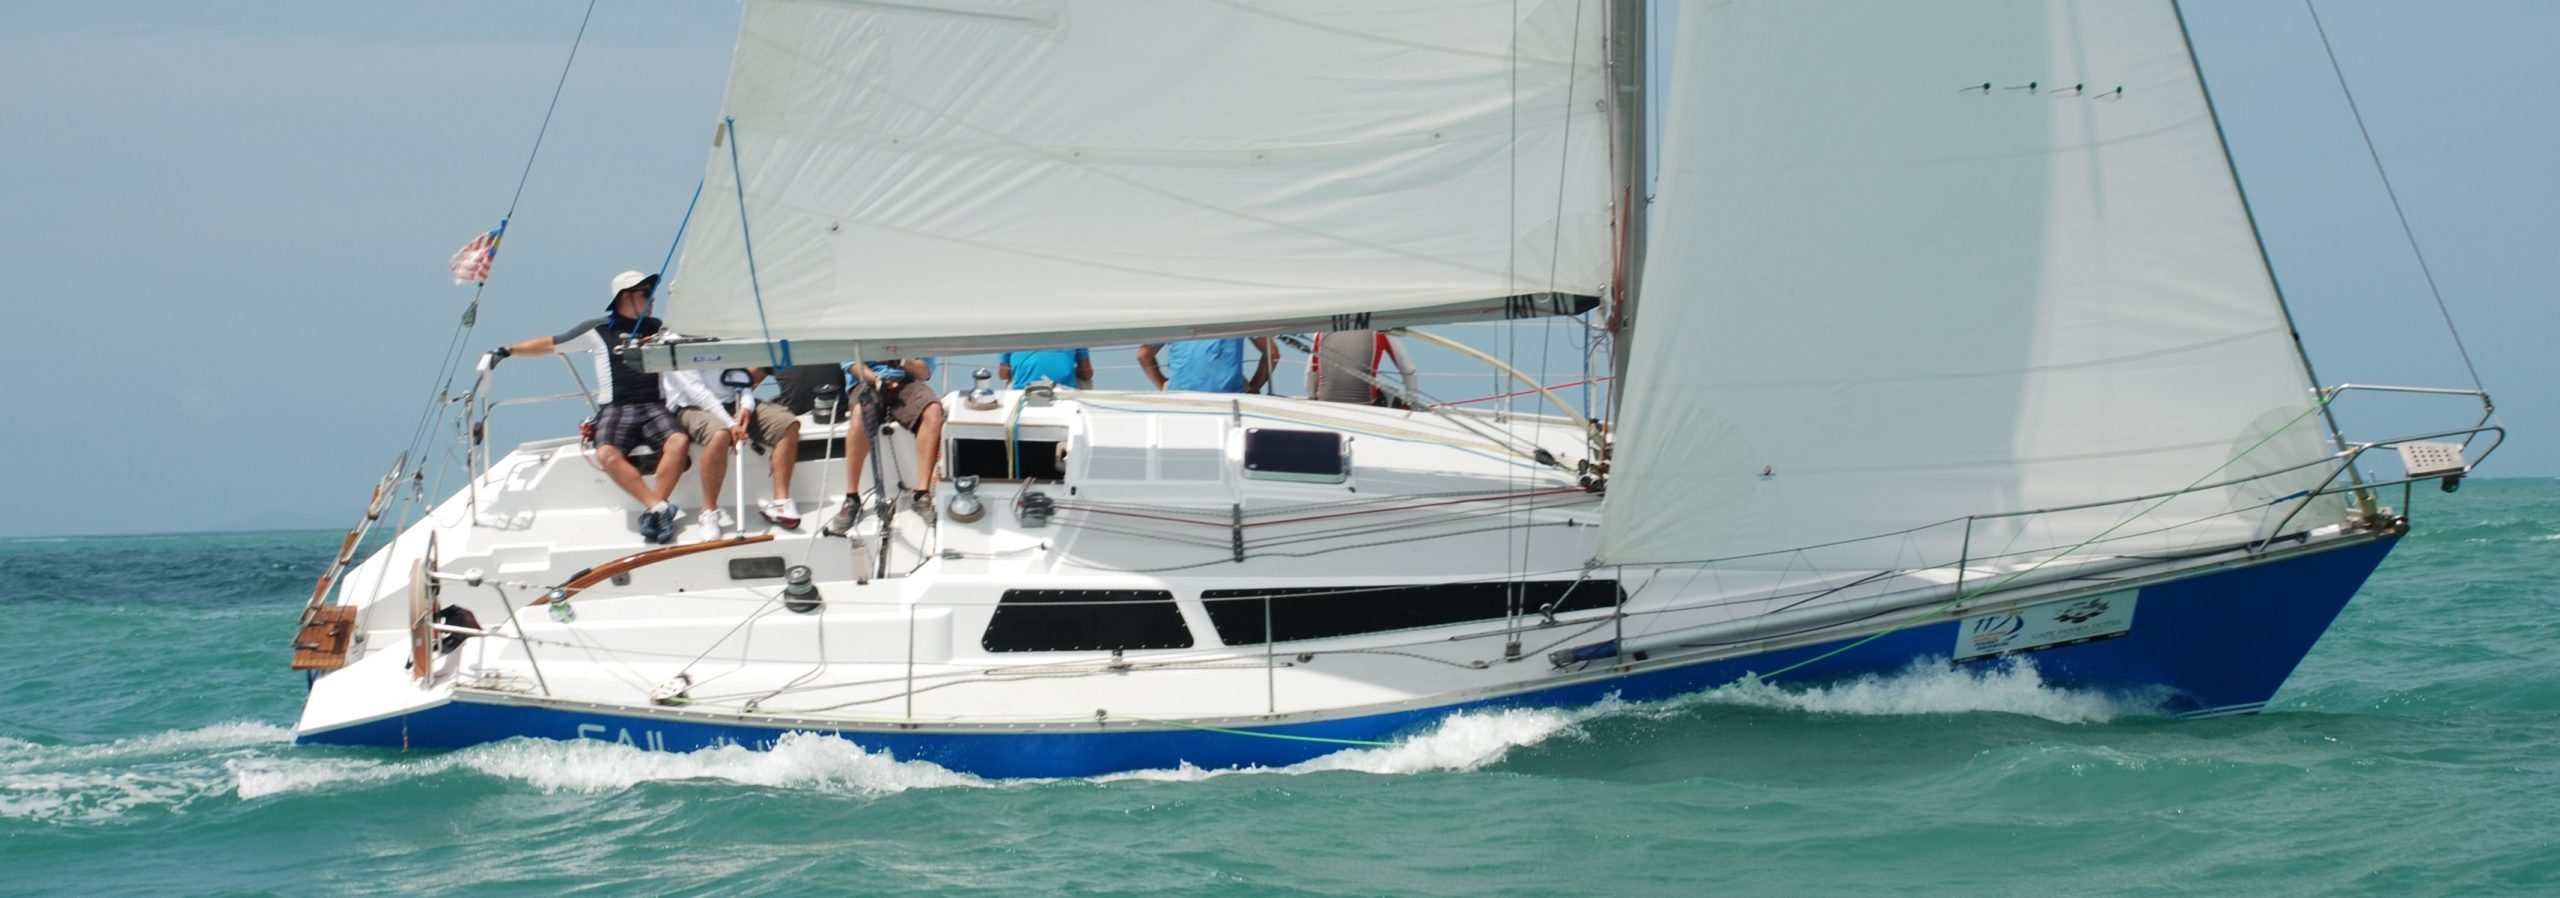 Learn to sail lowest price ever